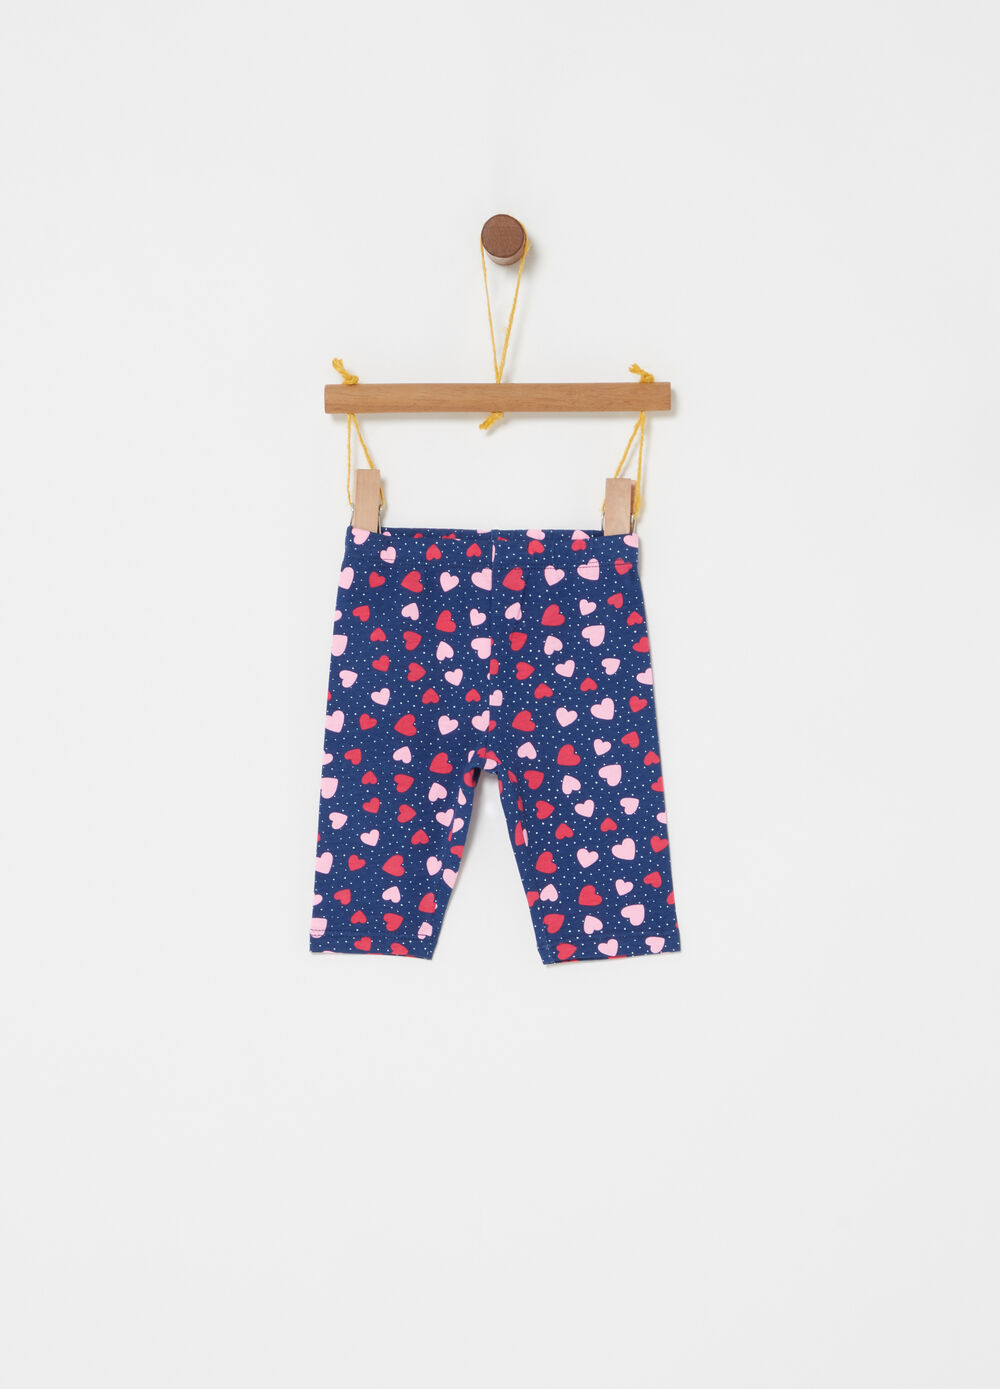 Short leggings with heart and polka dot pattern